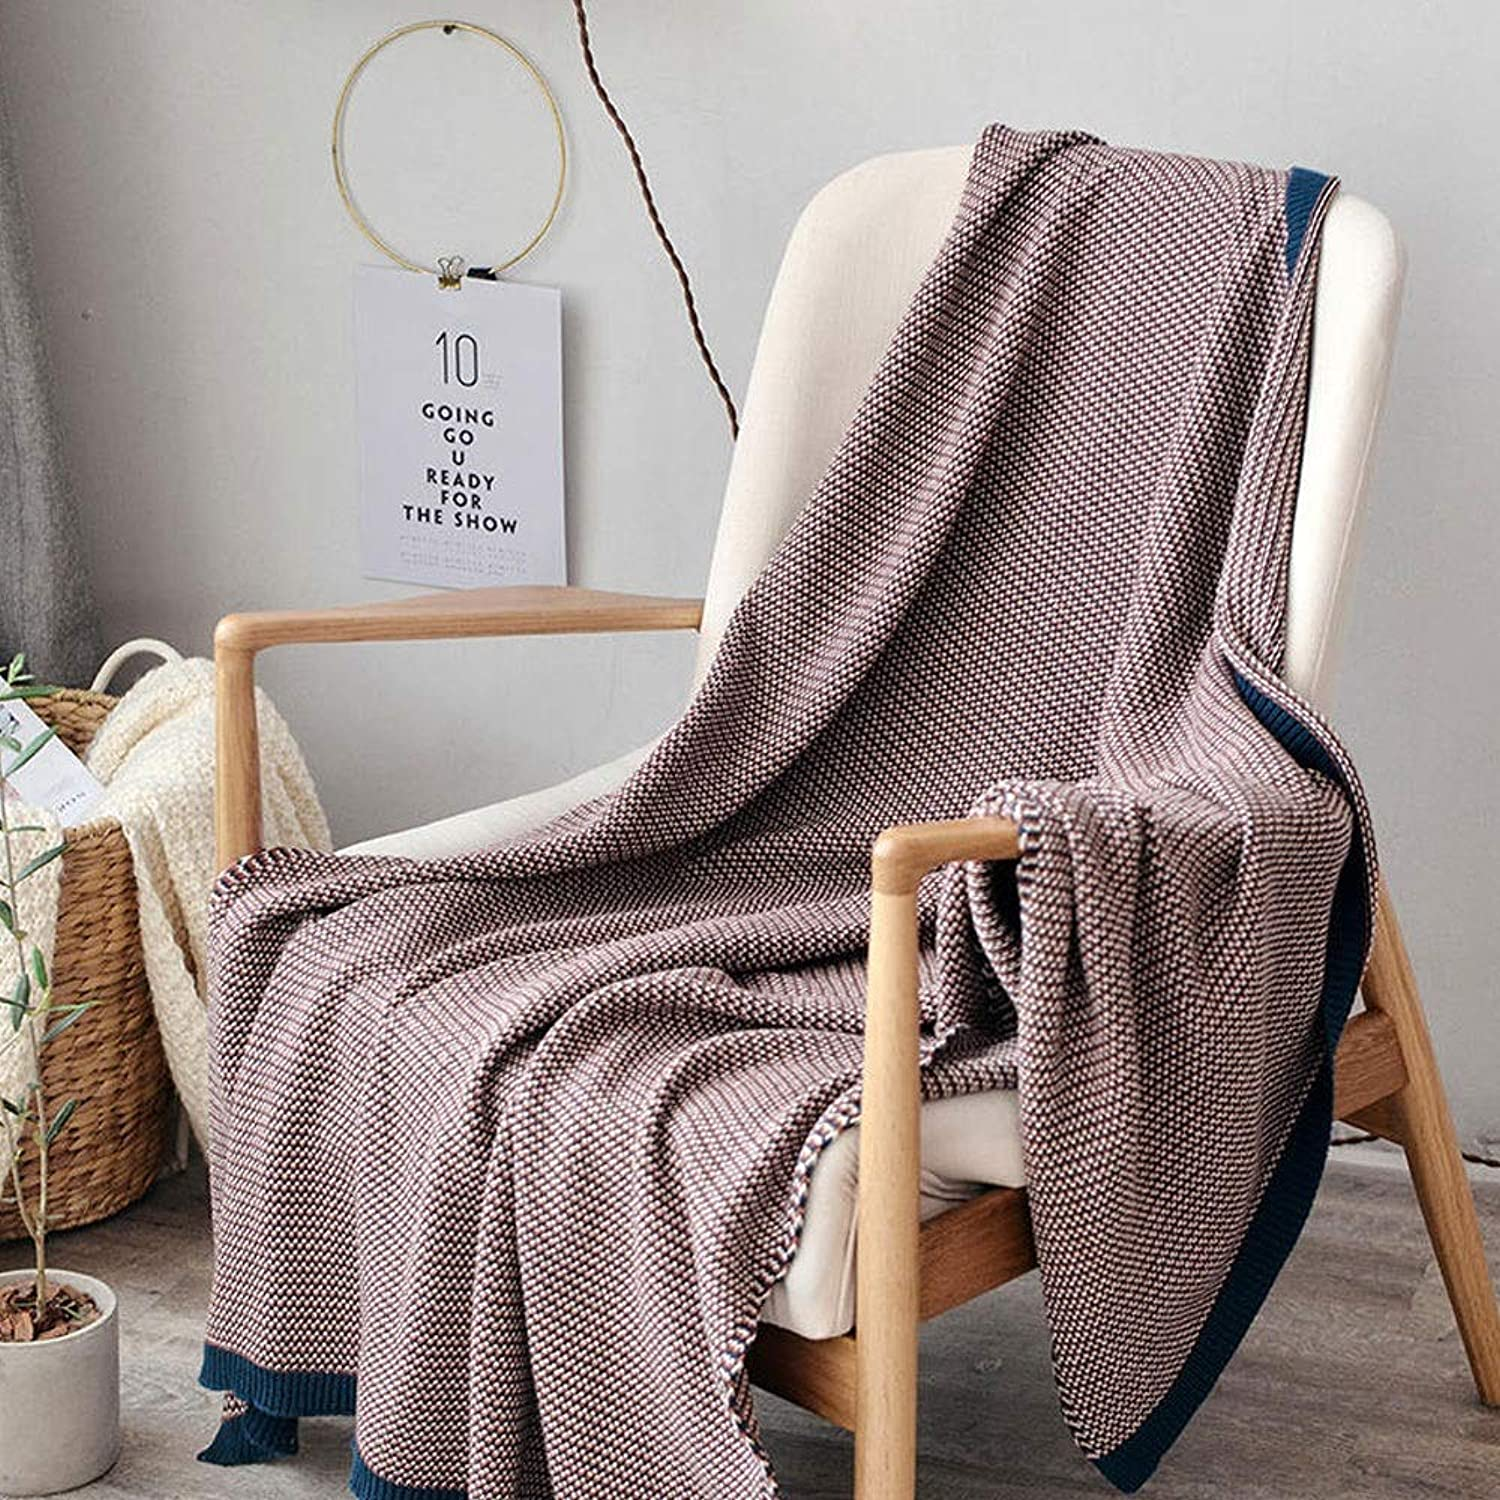 Cotton Solid color Wool blanket blanket Simple Wool Ball Knitting line blanket air Conditioning Sofa Leisure blanket (color   Purple, Size   51.18  62.99)